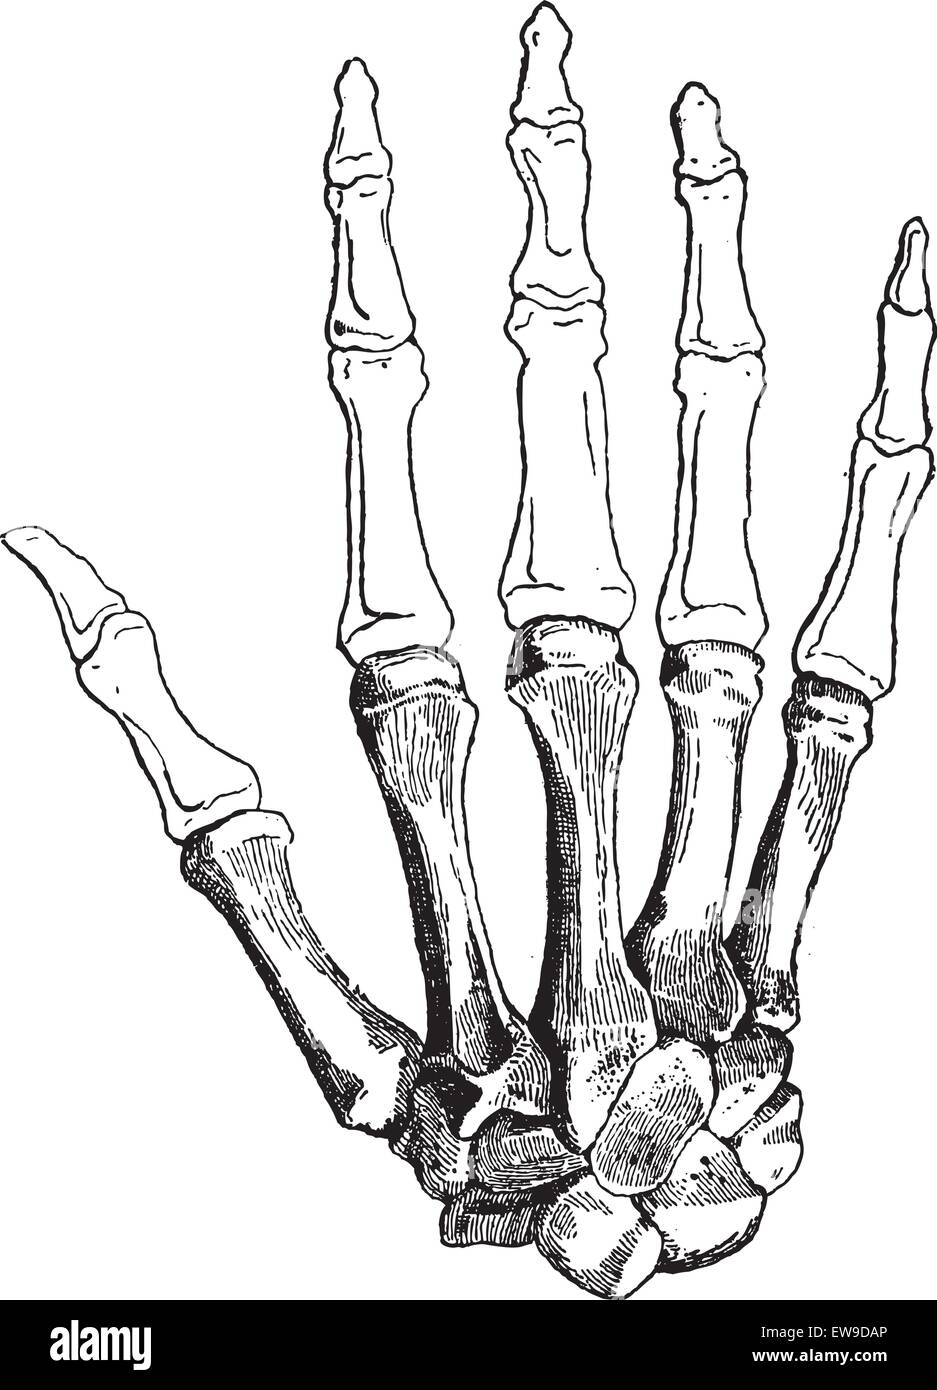 Bones of a Human Hand (dorsal side), showing (bottom to top) Carpals, Metacarpals, Proximal Phalanges, Intermediate - Stock Image